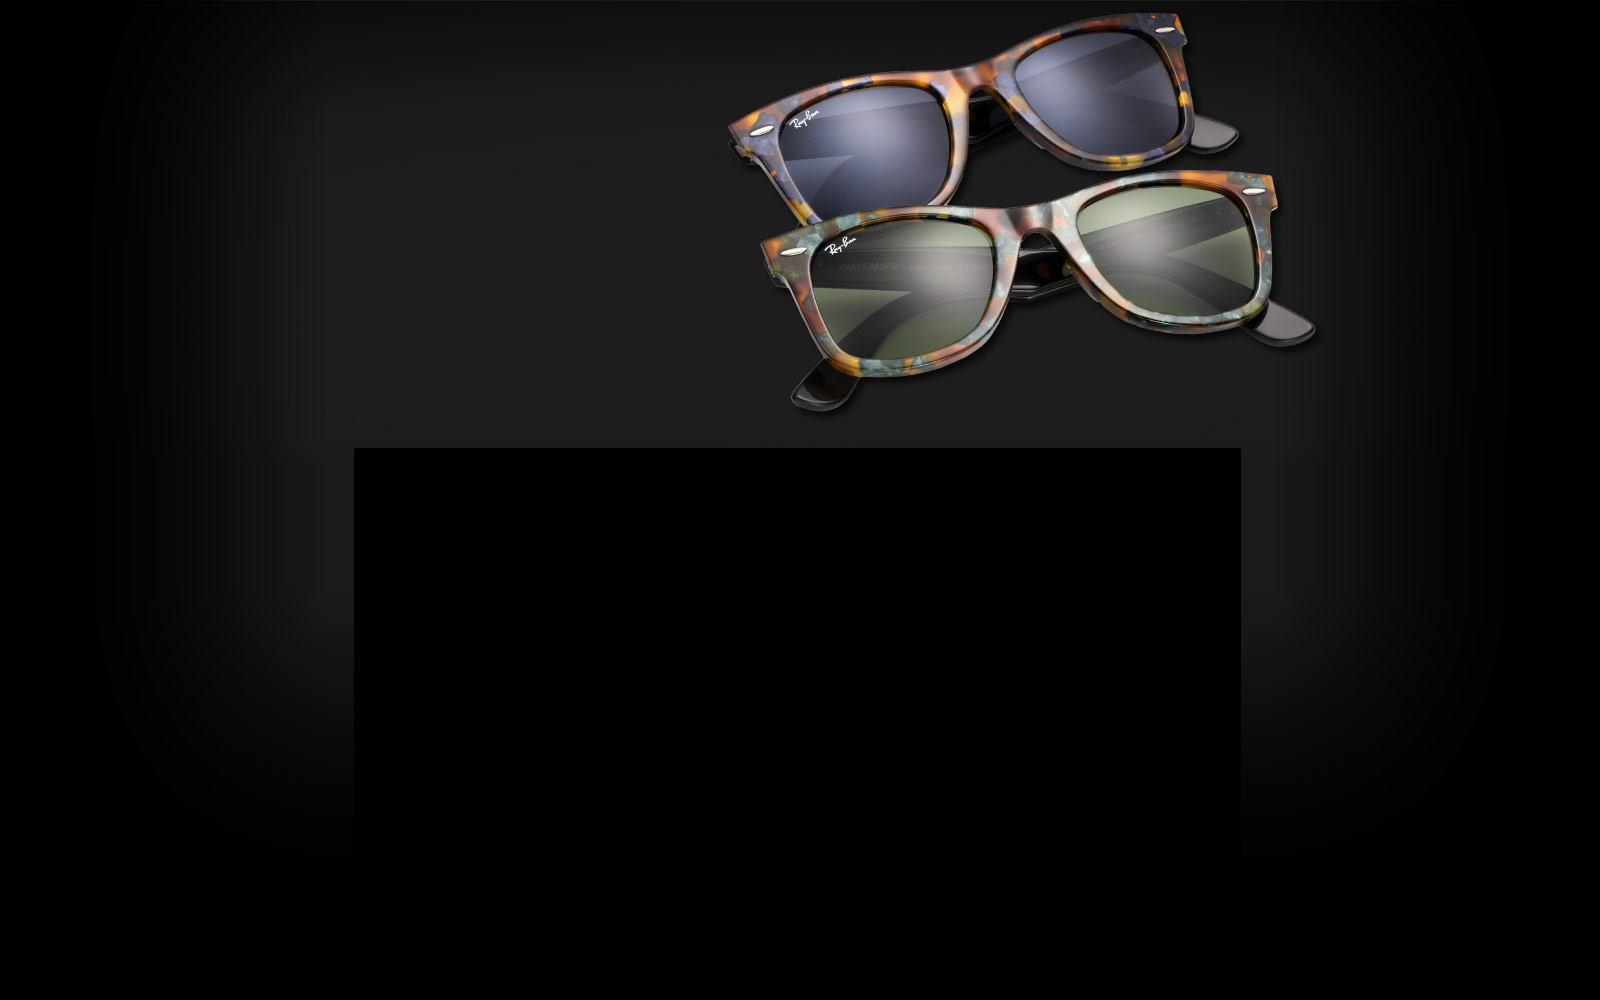 c71e8fc758 ray-ban official site uk sunglasses ray ban for men polarized aviator